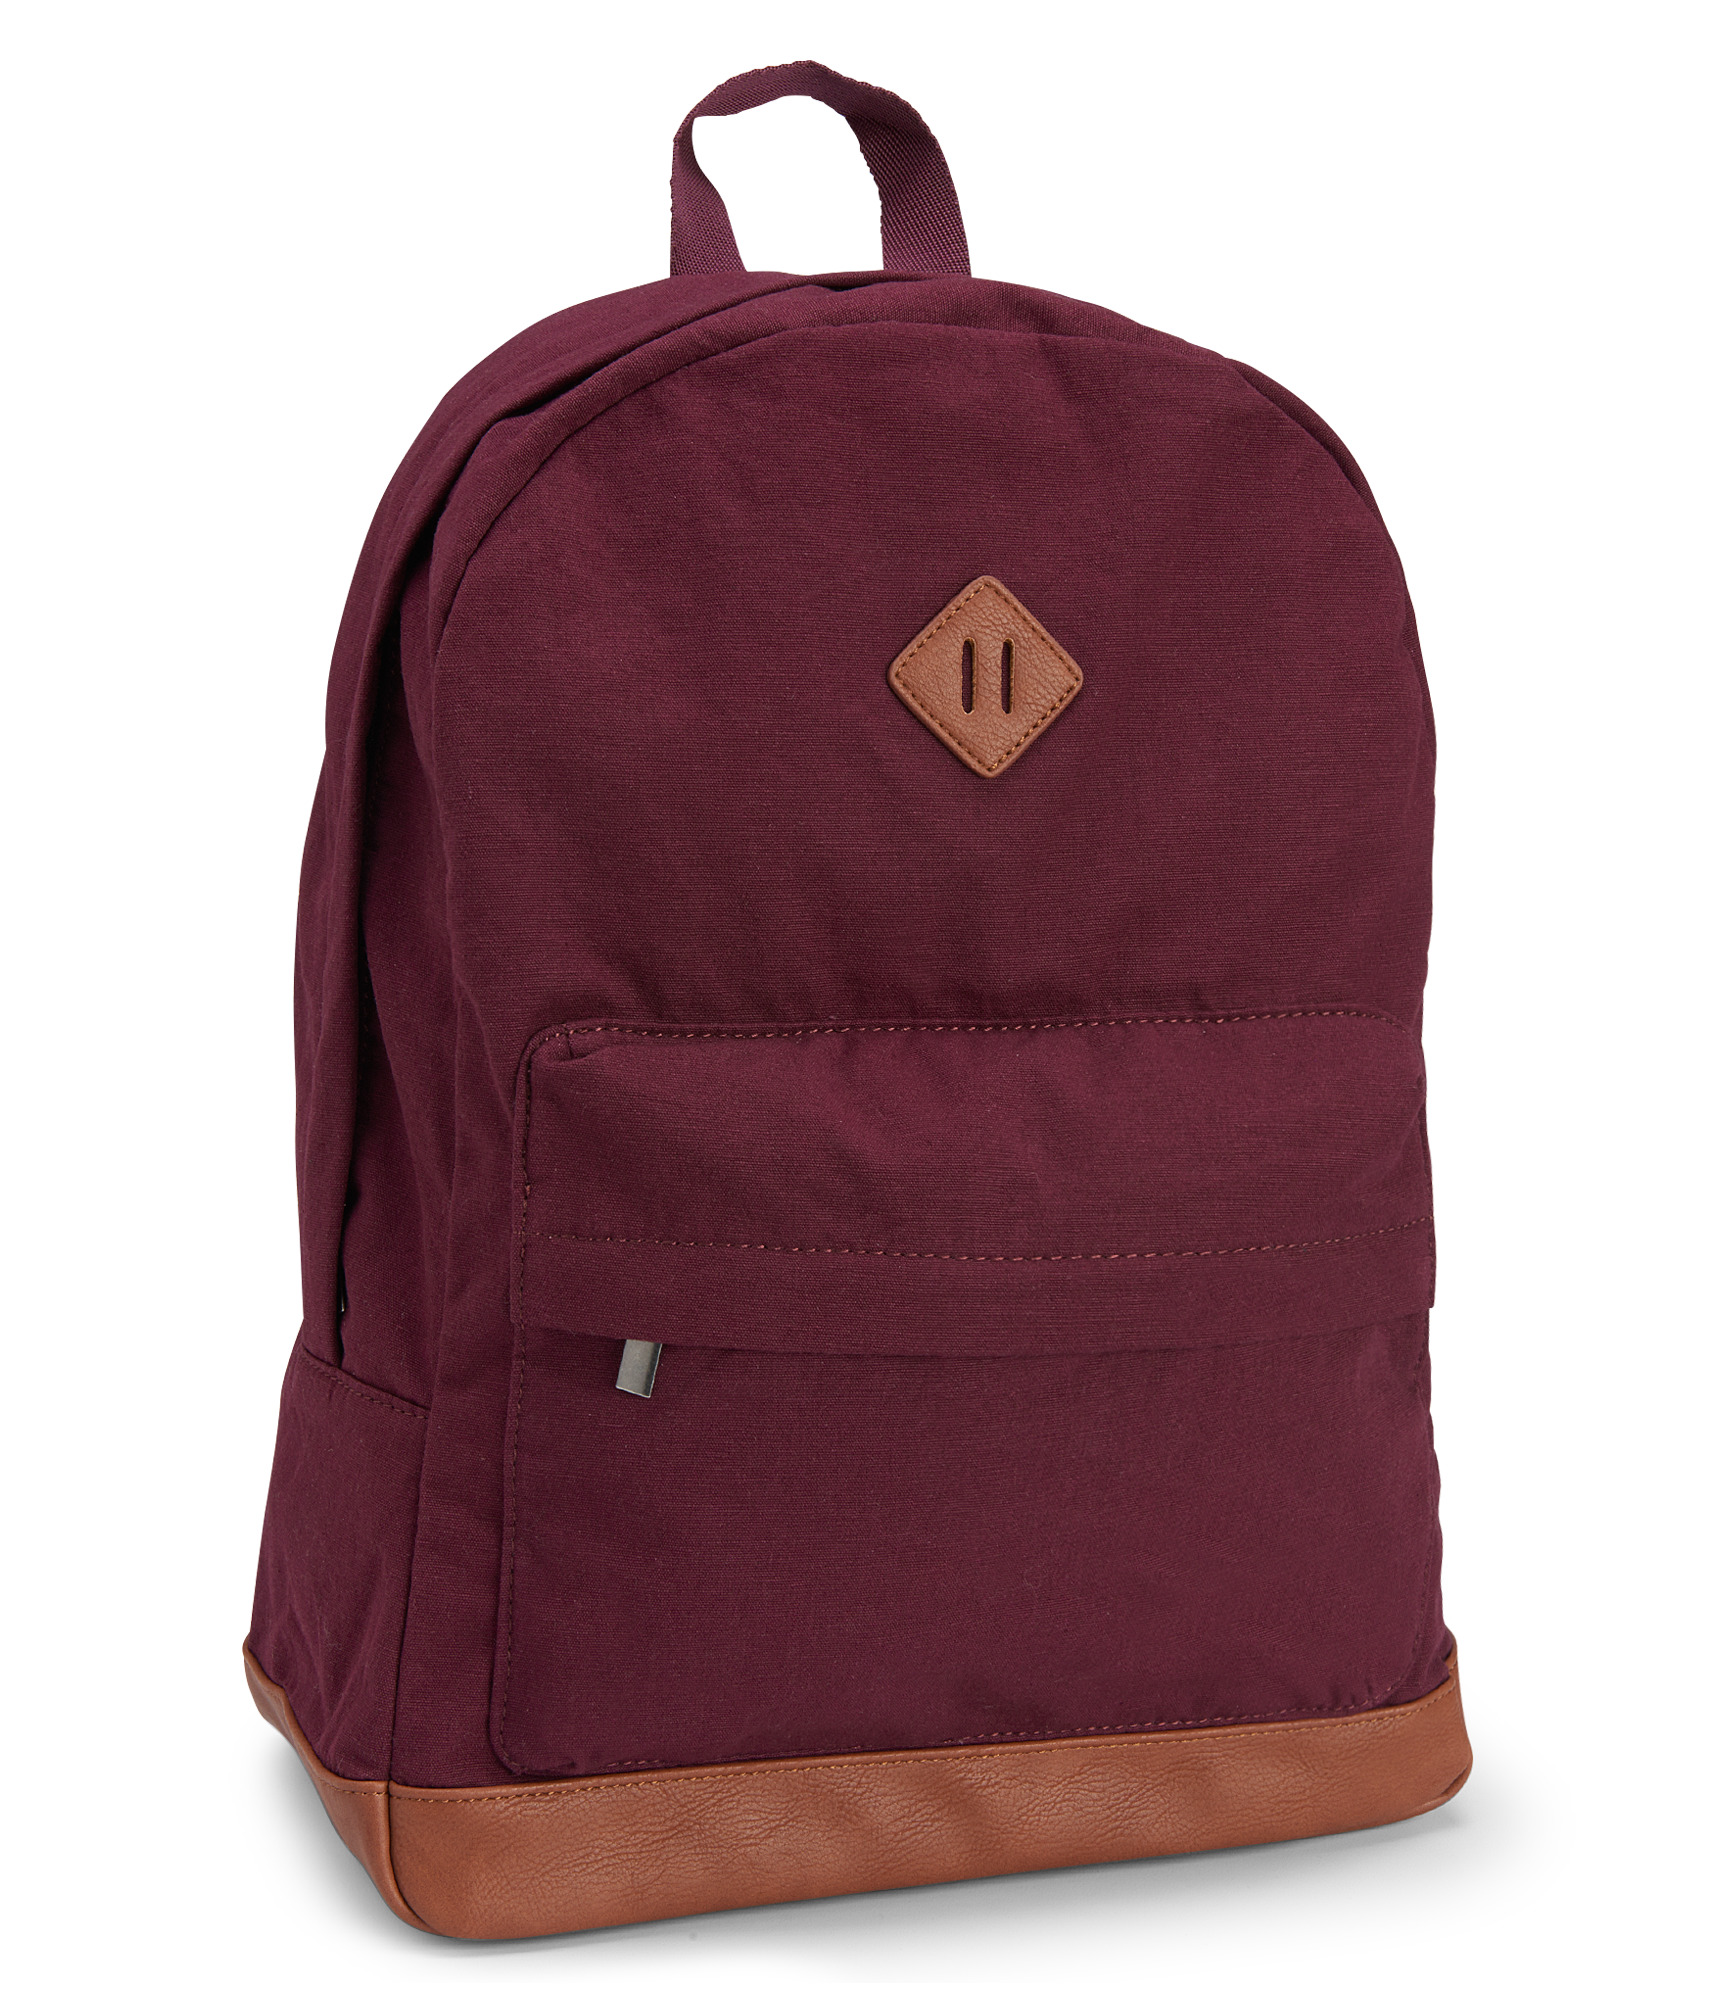 6930d61e5d Solid Canvas Backpack